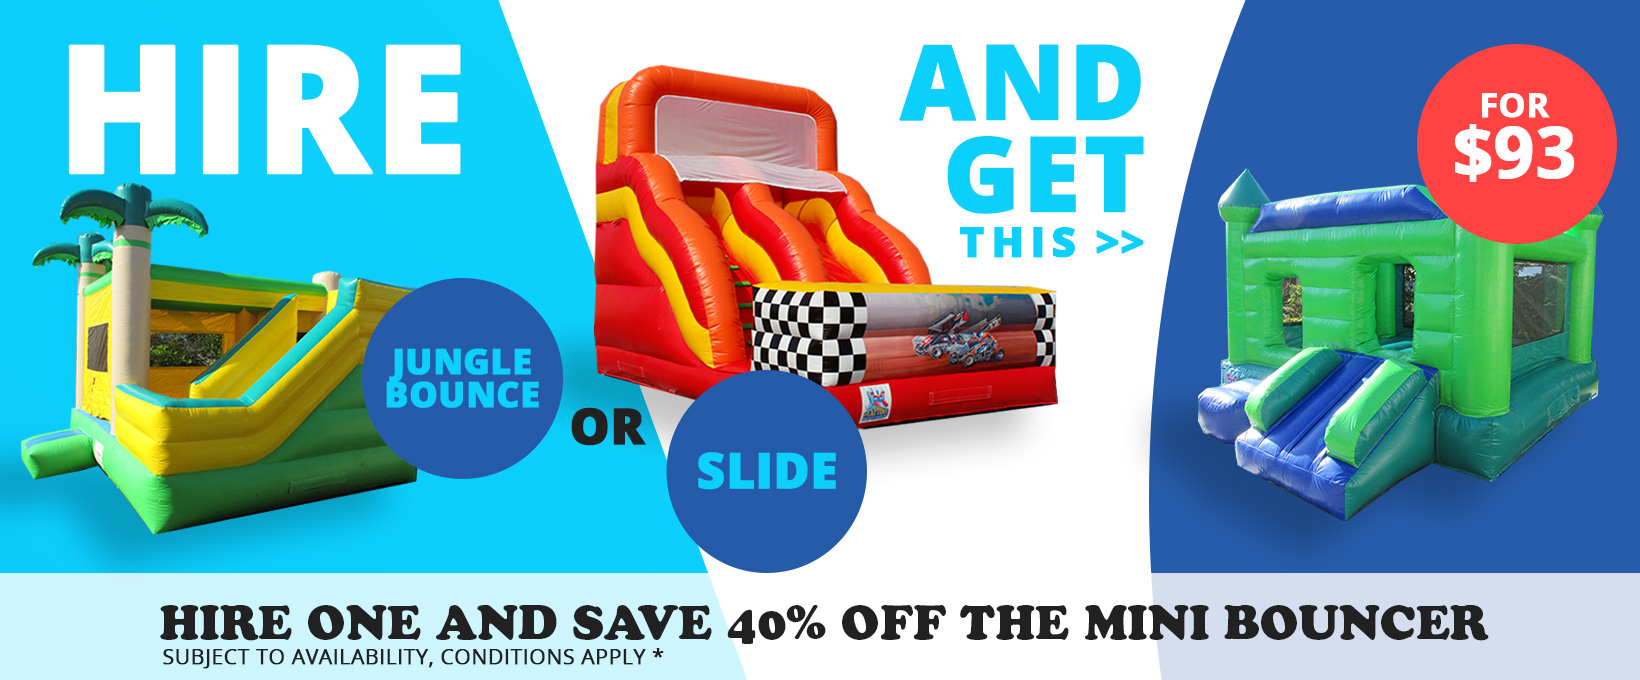 Rotorua Party Bouncy Castles - Hire Jungle Bounce or Slide and get Mini Bouncer for $93